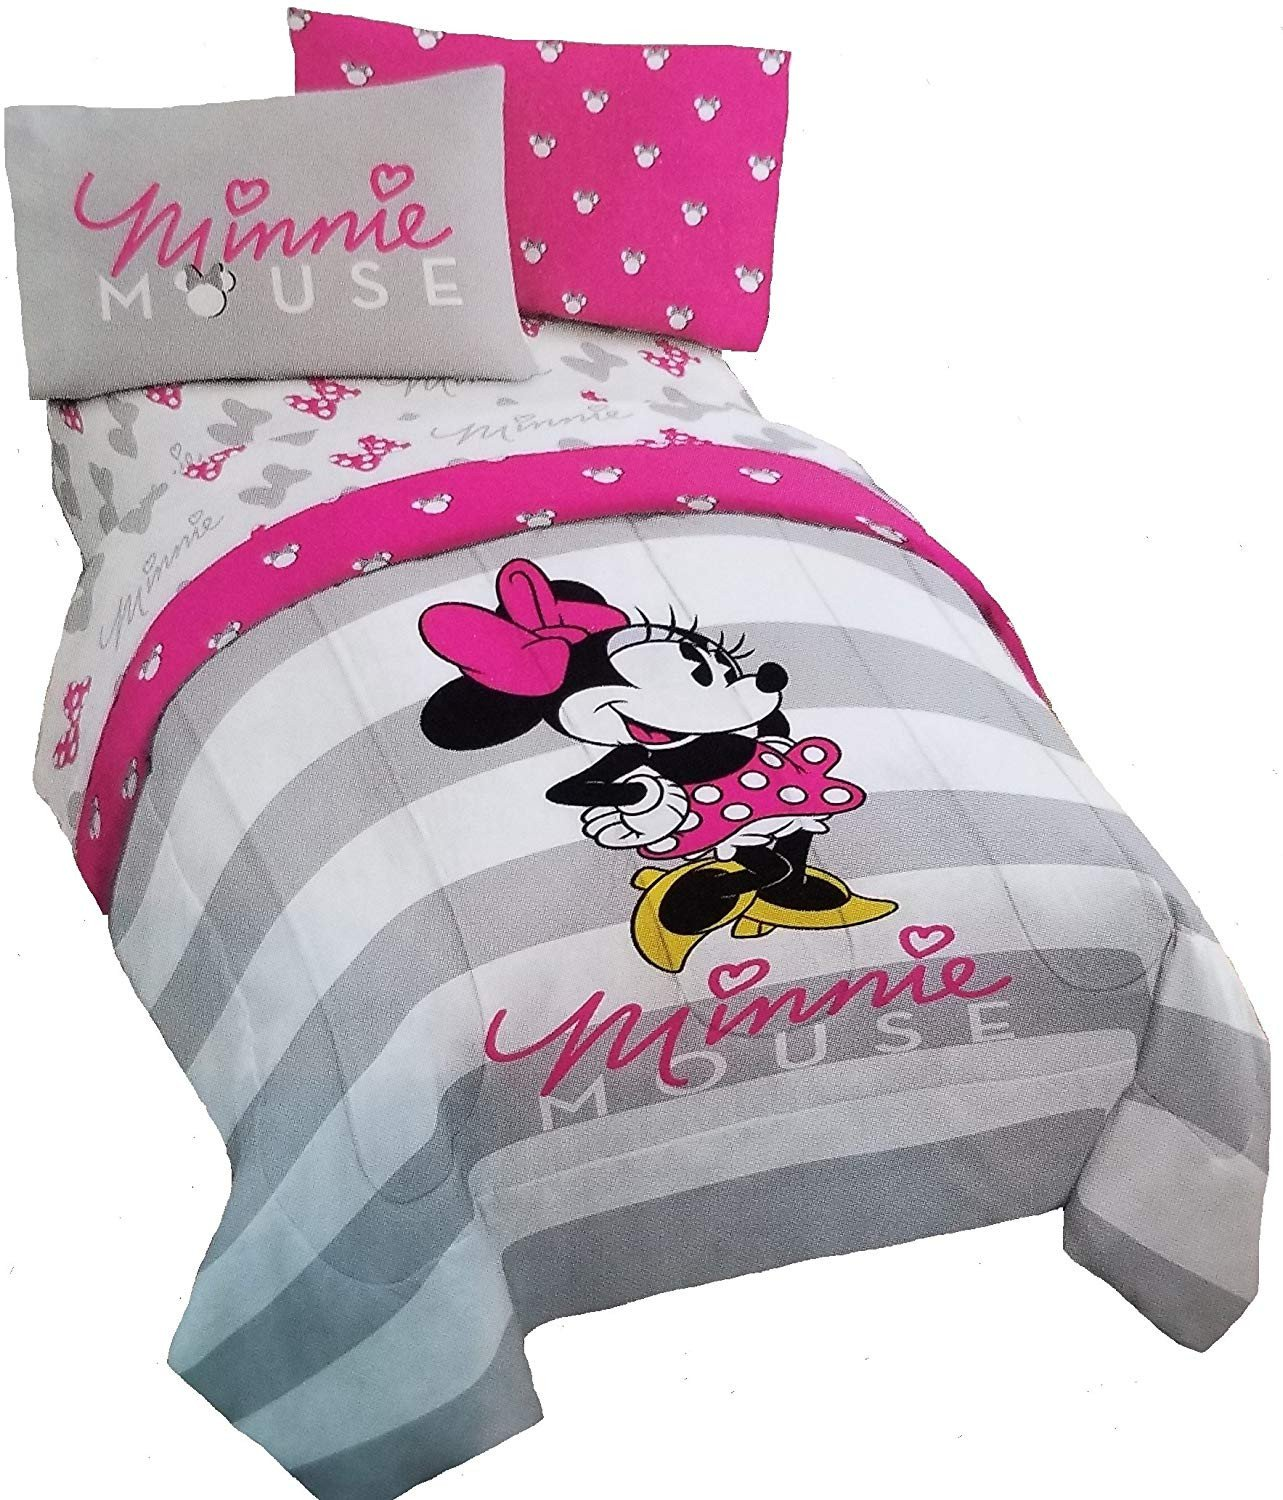 Minnie Mouse Twin Bedroom Set Elegant Disney Minnie Mouse 4pc Pink & Gray Reversible Twin forter and Sheet Set